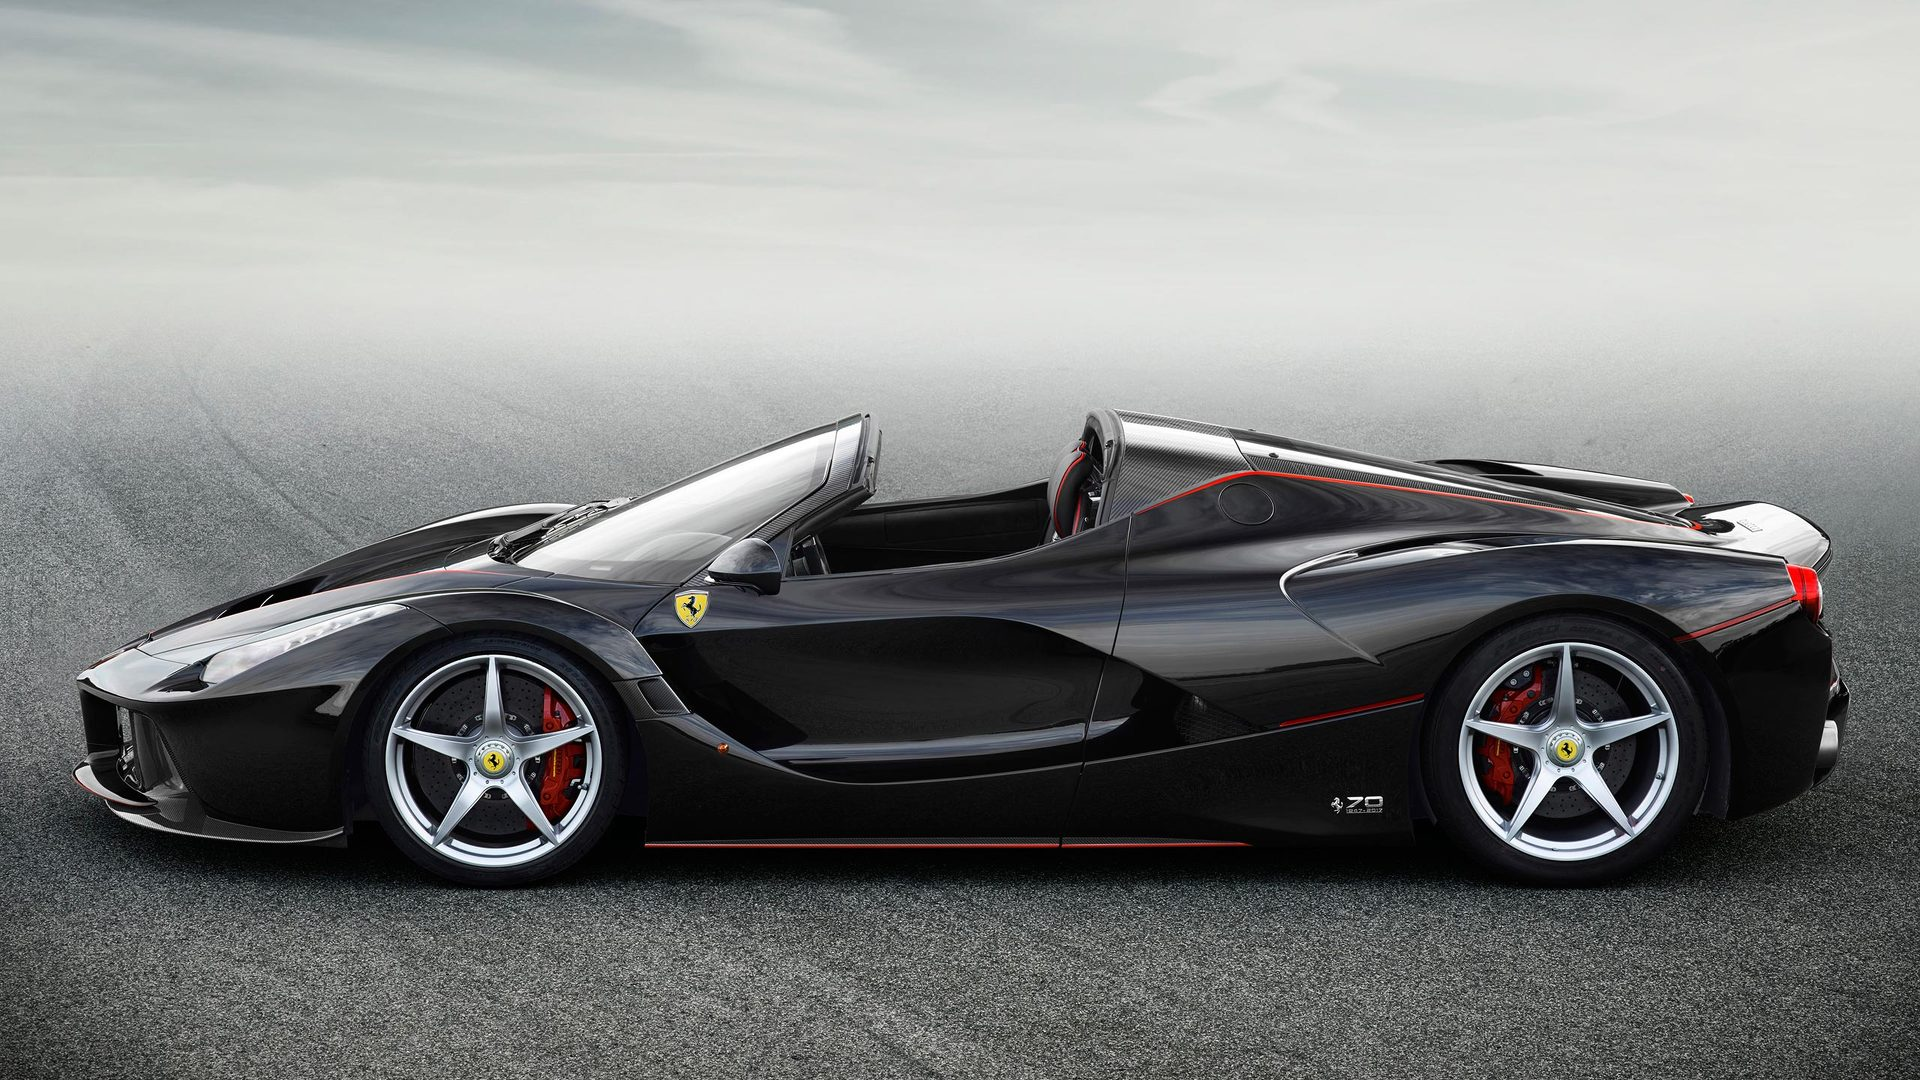 More Ferrari Hybrids From Ceo Says